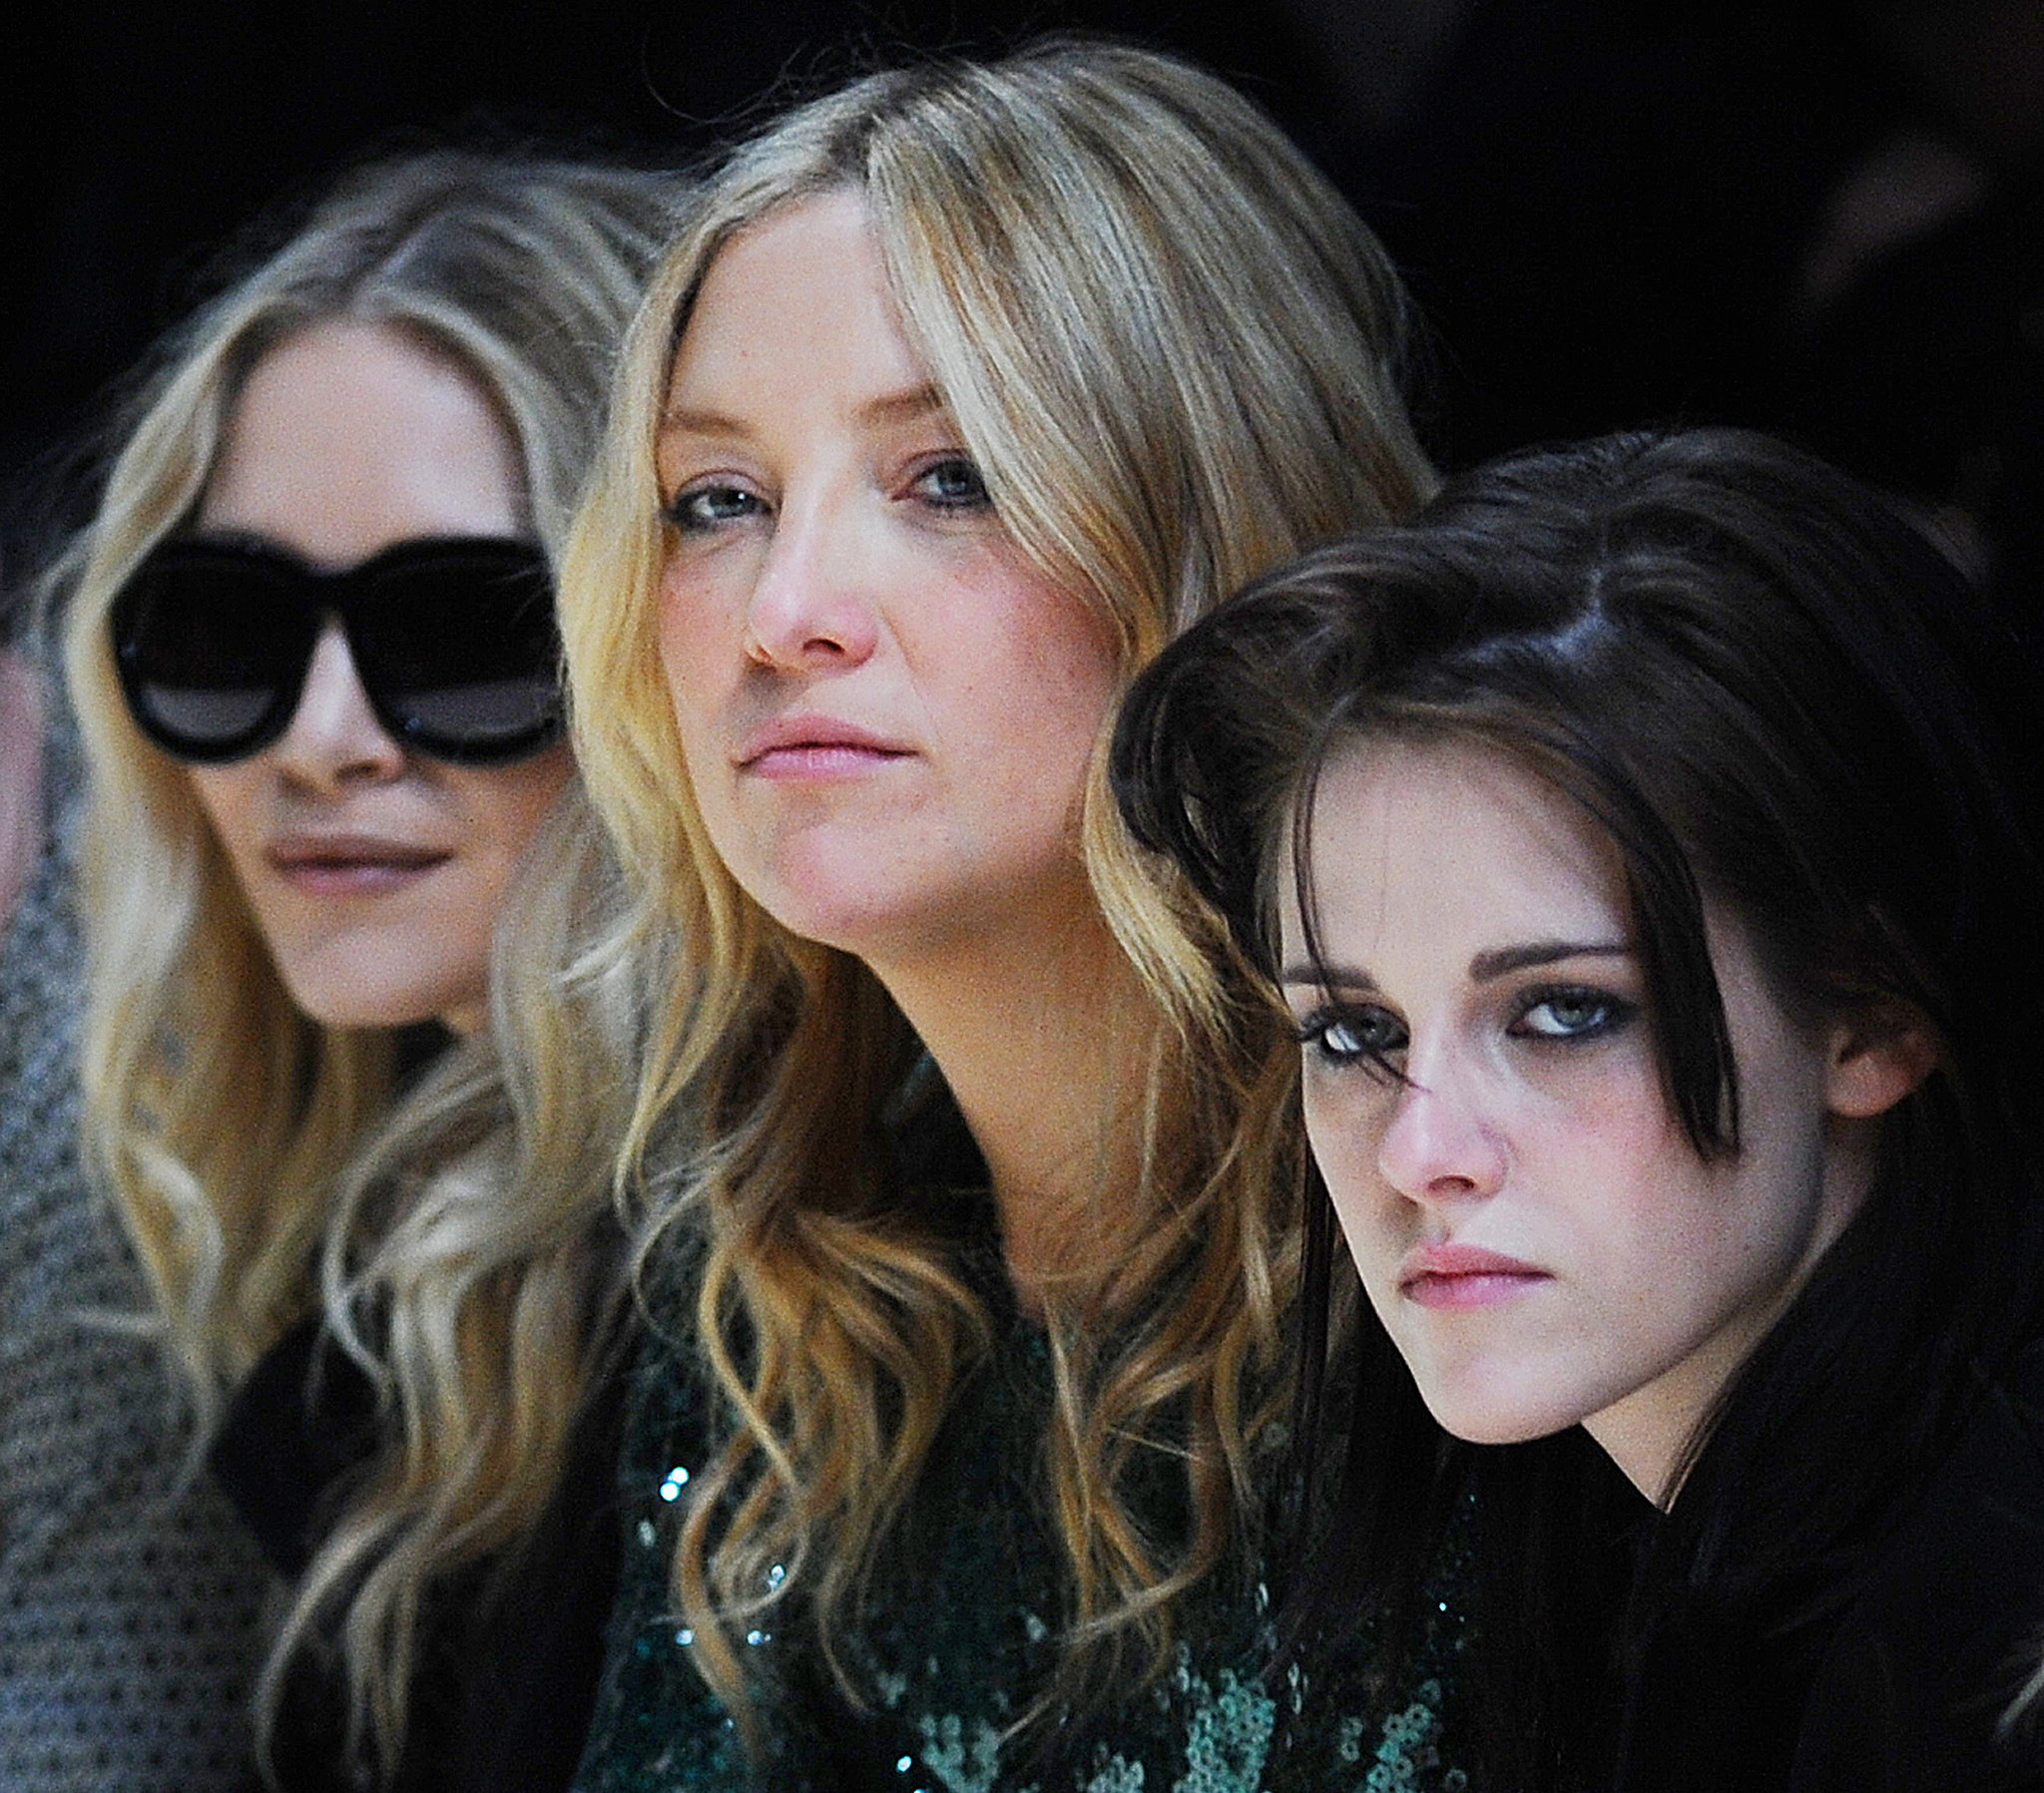 Ashley Olsen, Kate Hudson, and Kristen Stewart were serious at Burberry in February 2010.